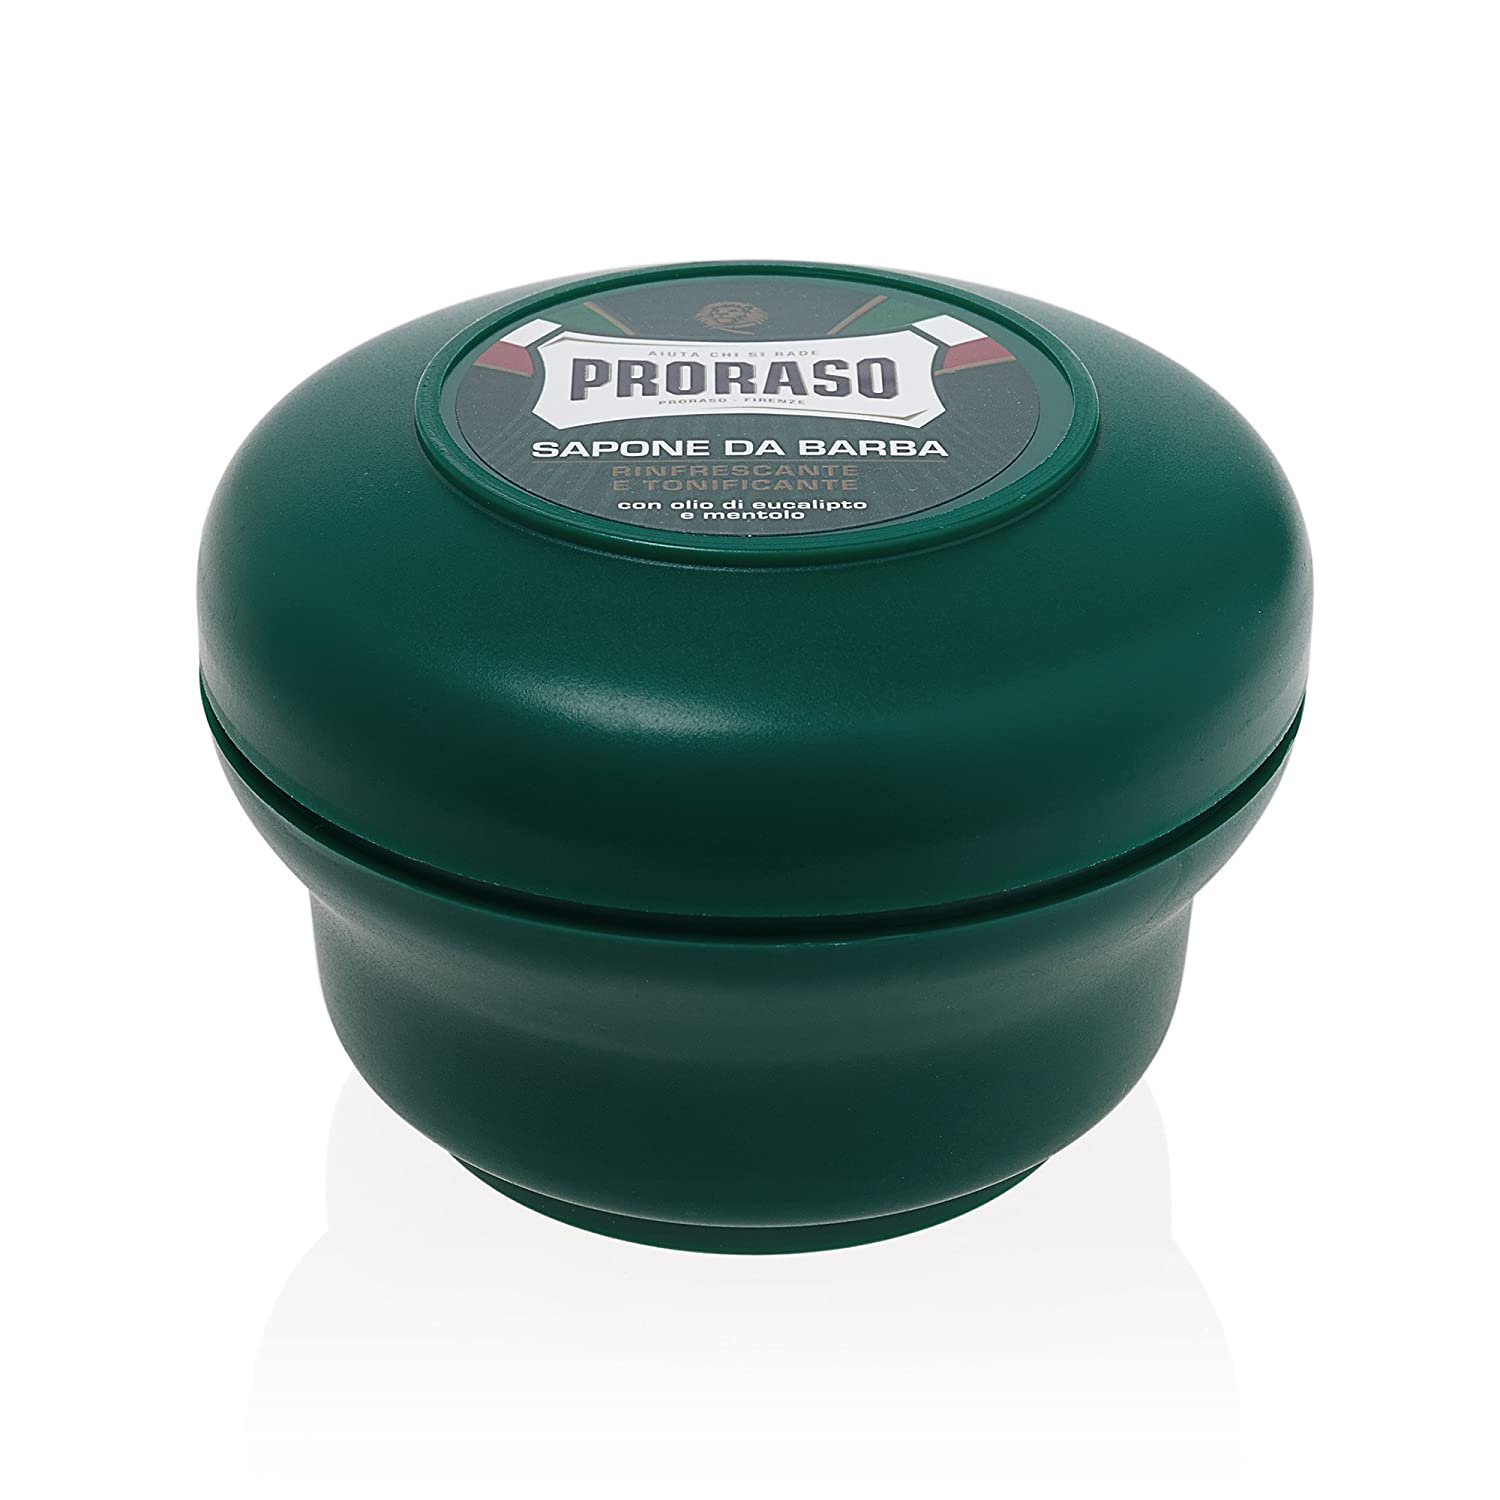 Proraso Green Shaving Soap with Eucalyptus and Menthol